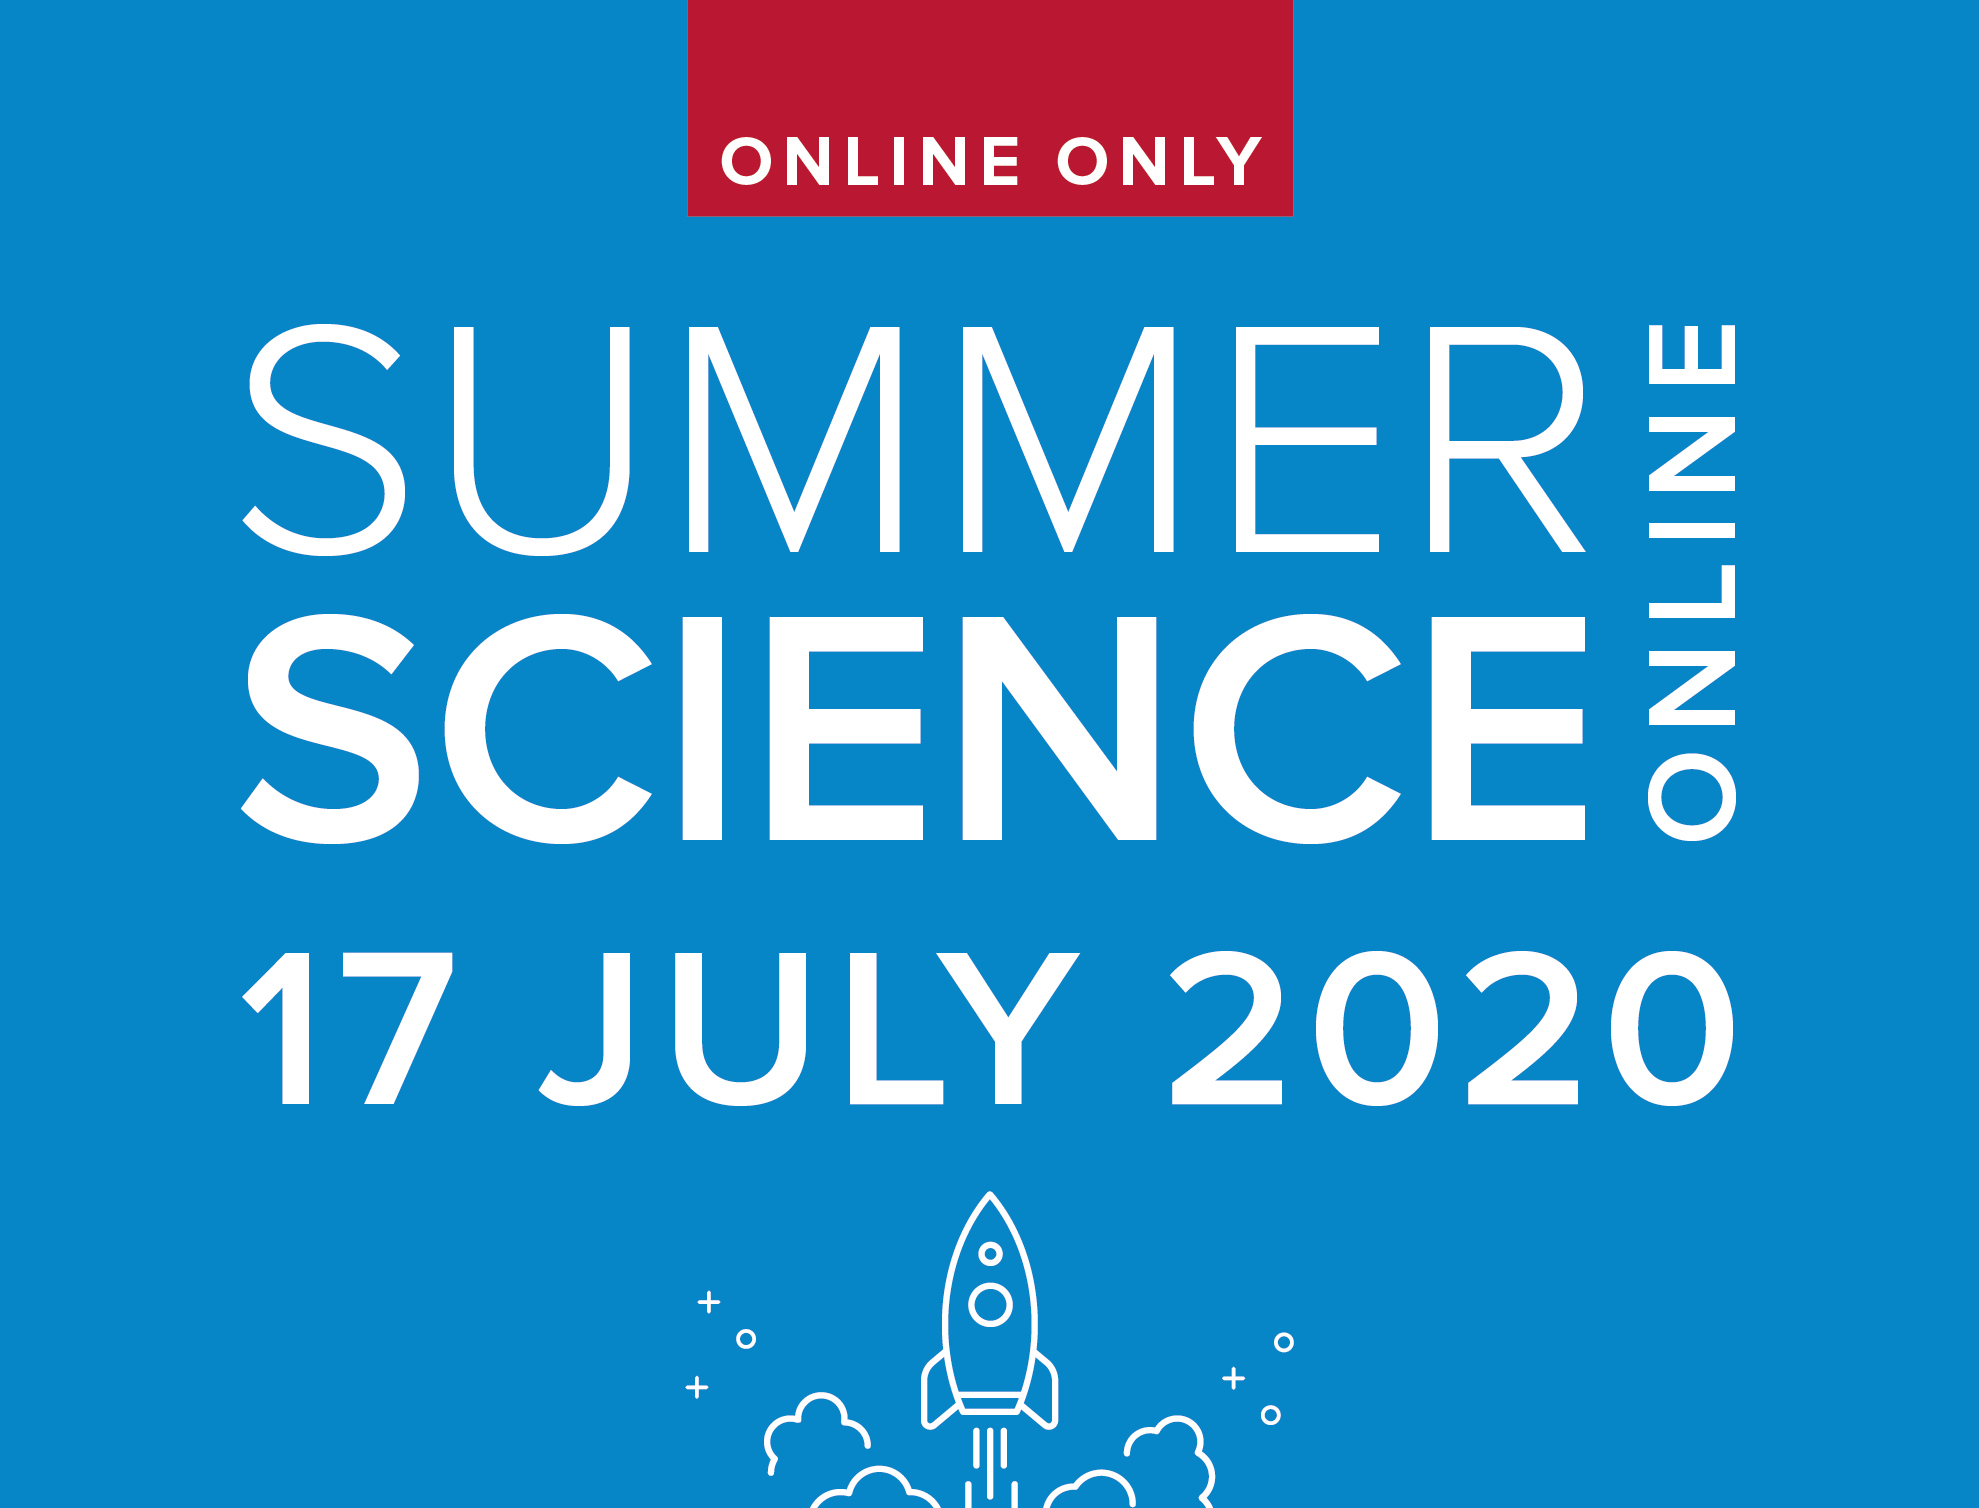 Summer Science Online 17 July 2020